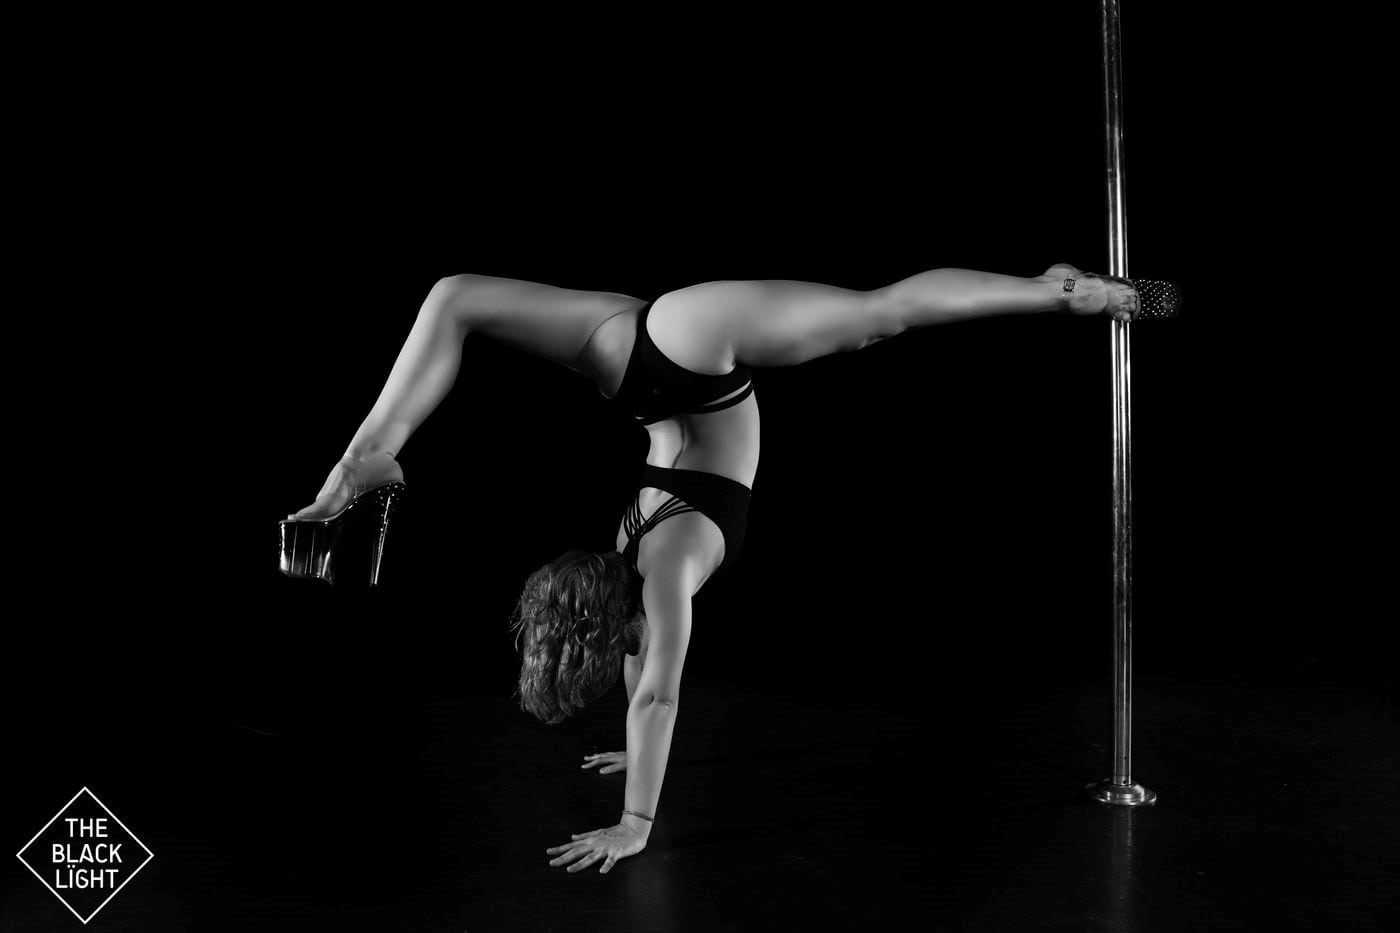 black and white image of woman doing split against pole for photoshoot